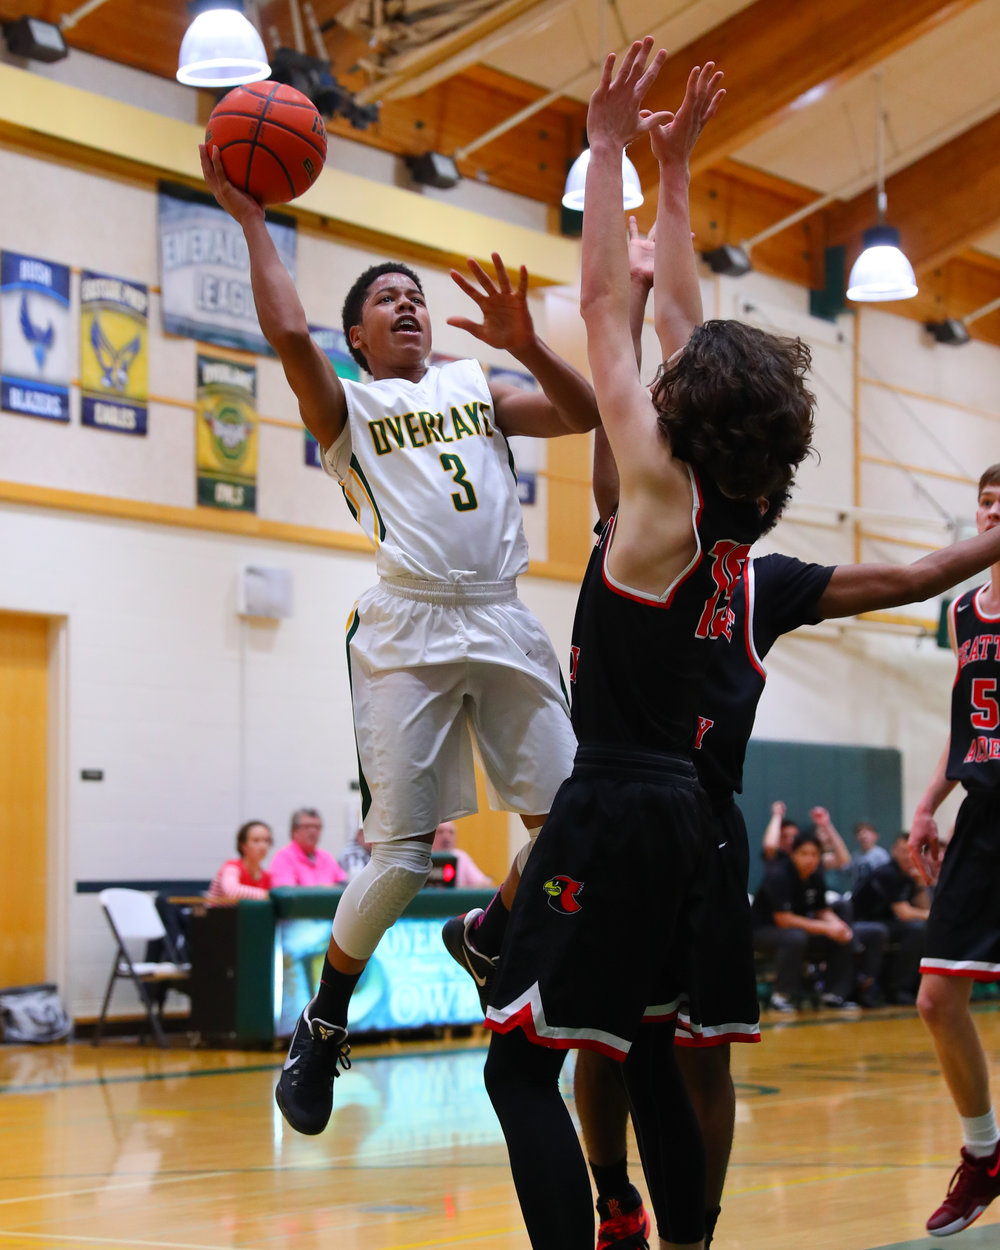 709-2017-01-20 Overlake Boys Varsity Basketball v Seattle Academy-209.jpg